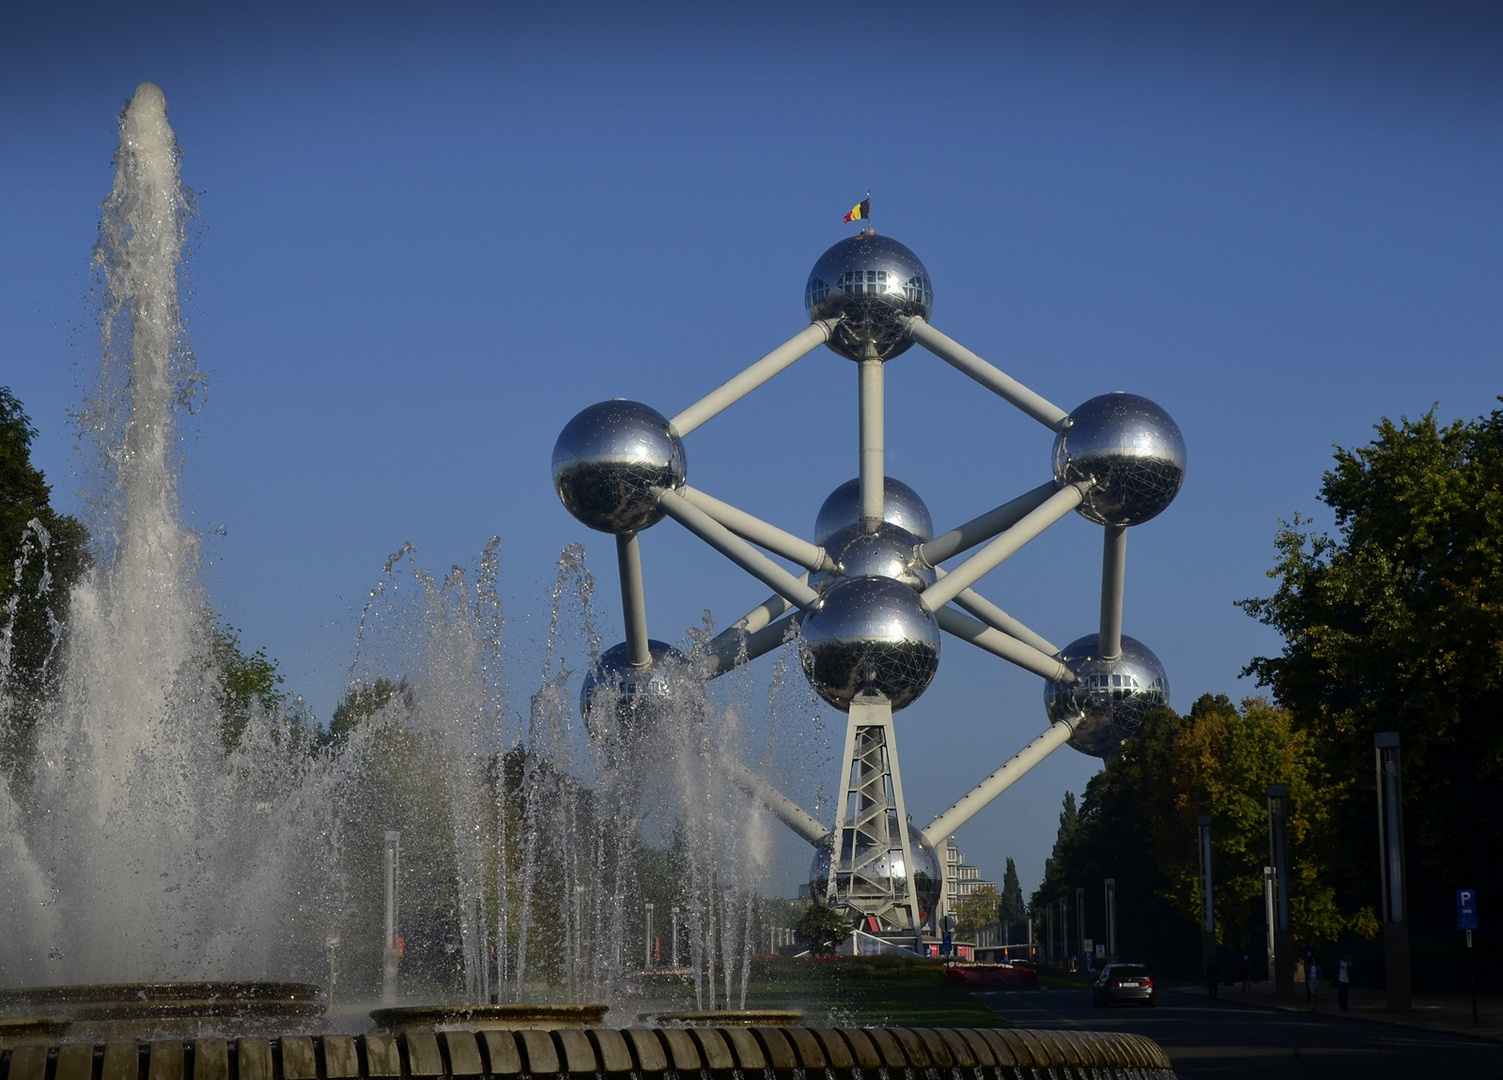 Postcard from Brussels